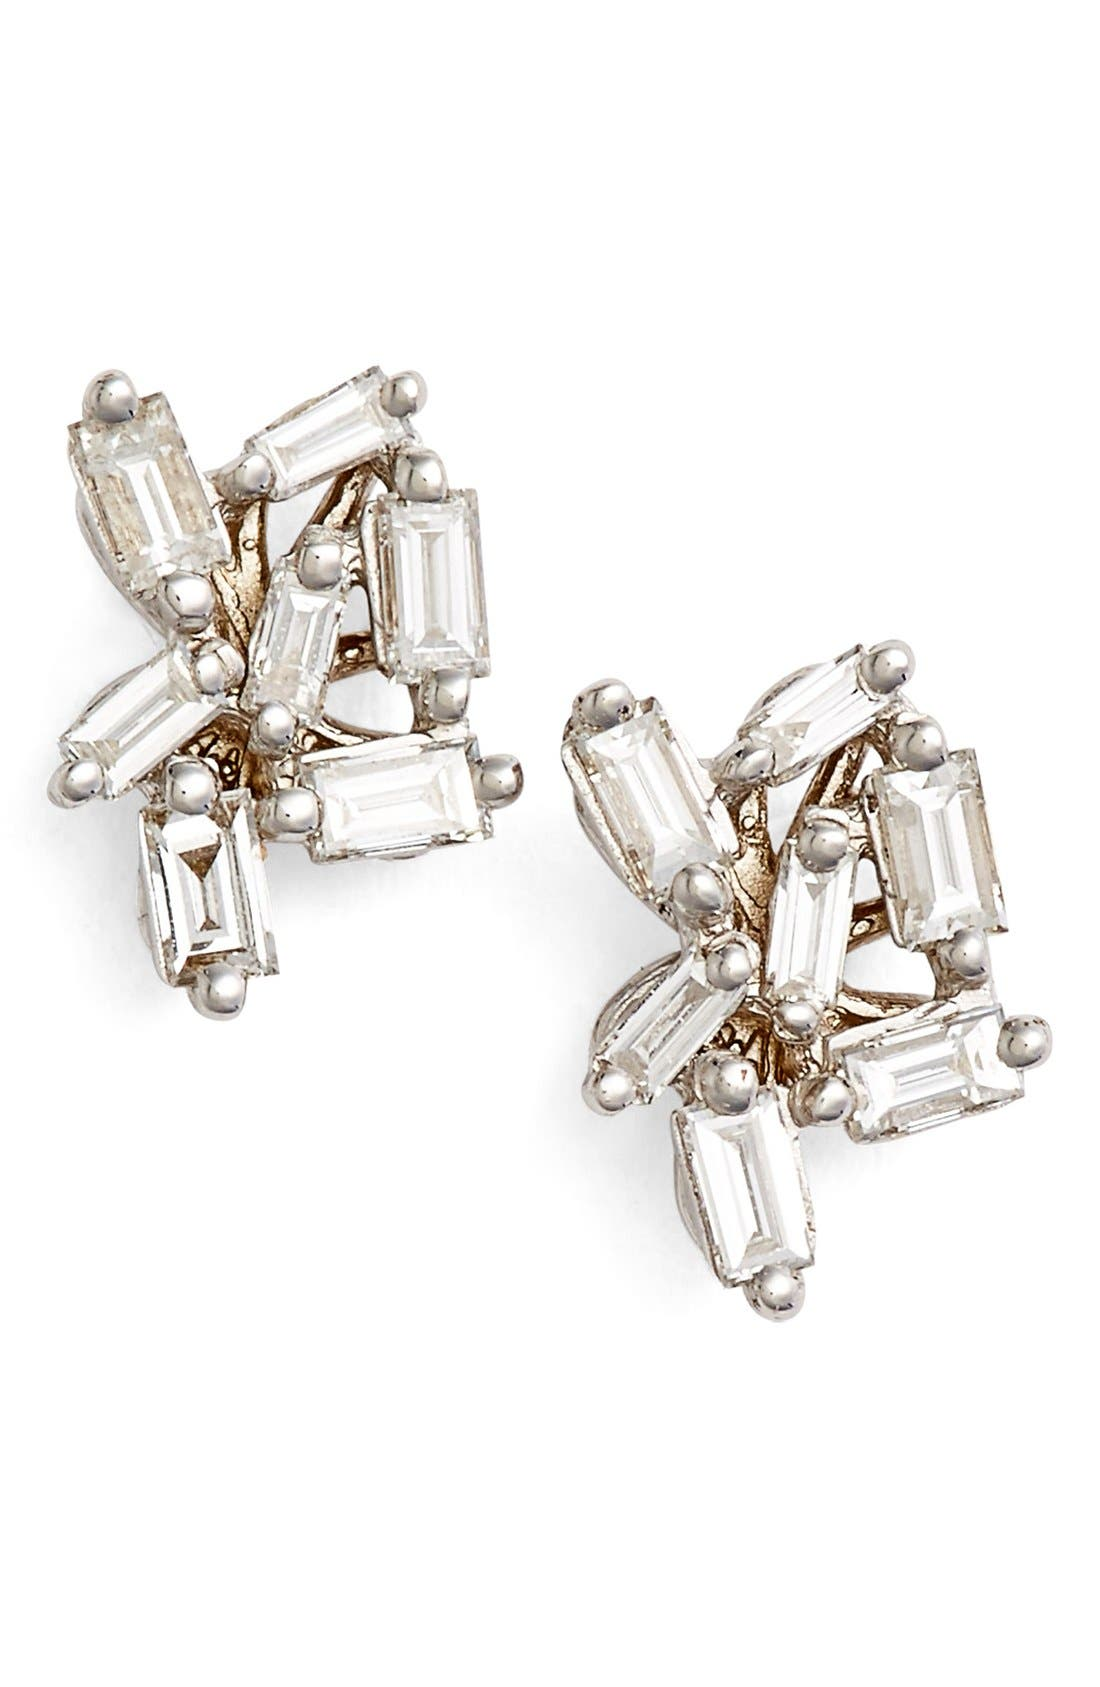 SUZANNE KALAN Fireworks Diamond Cluster Stud Earrings